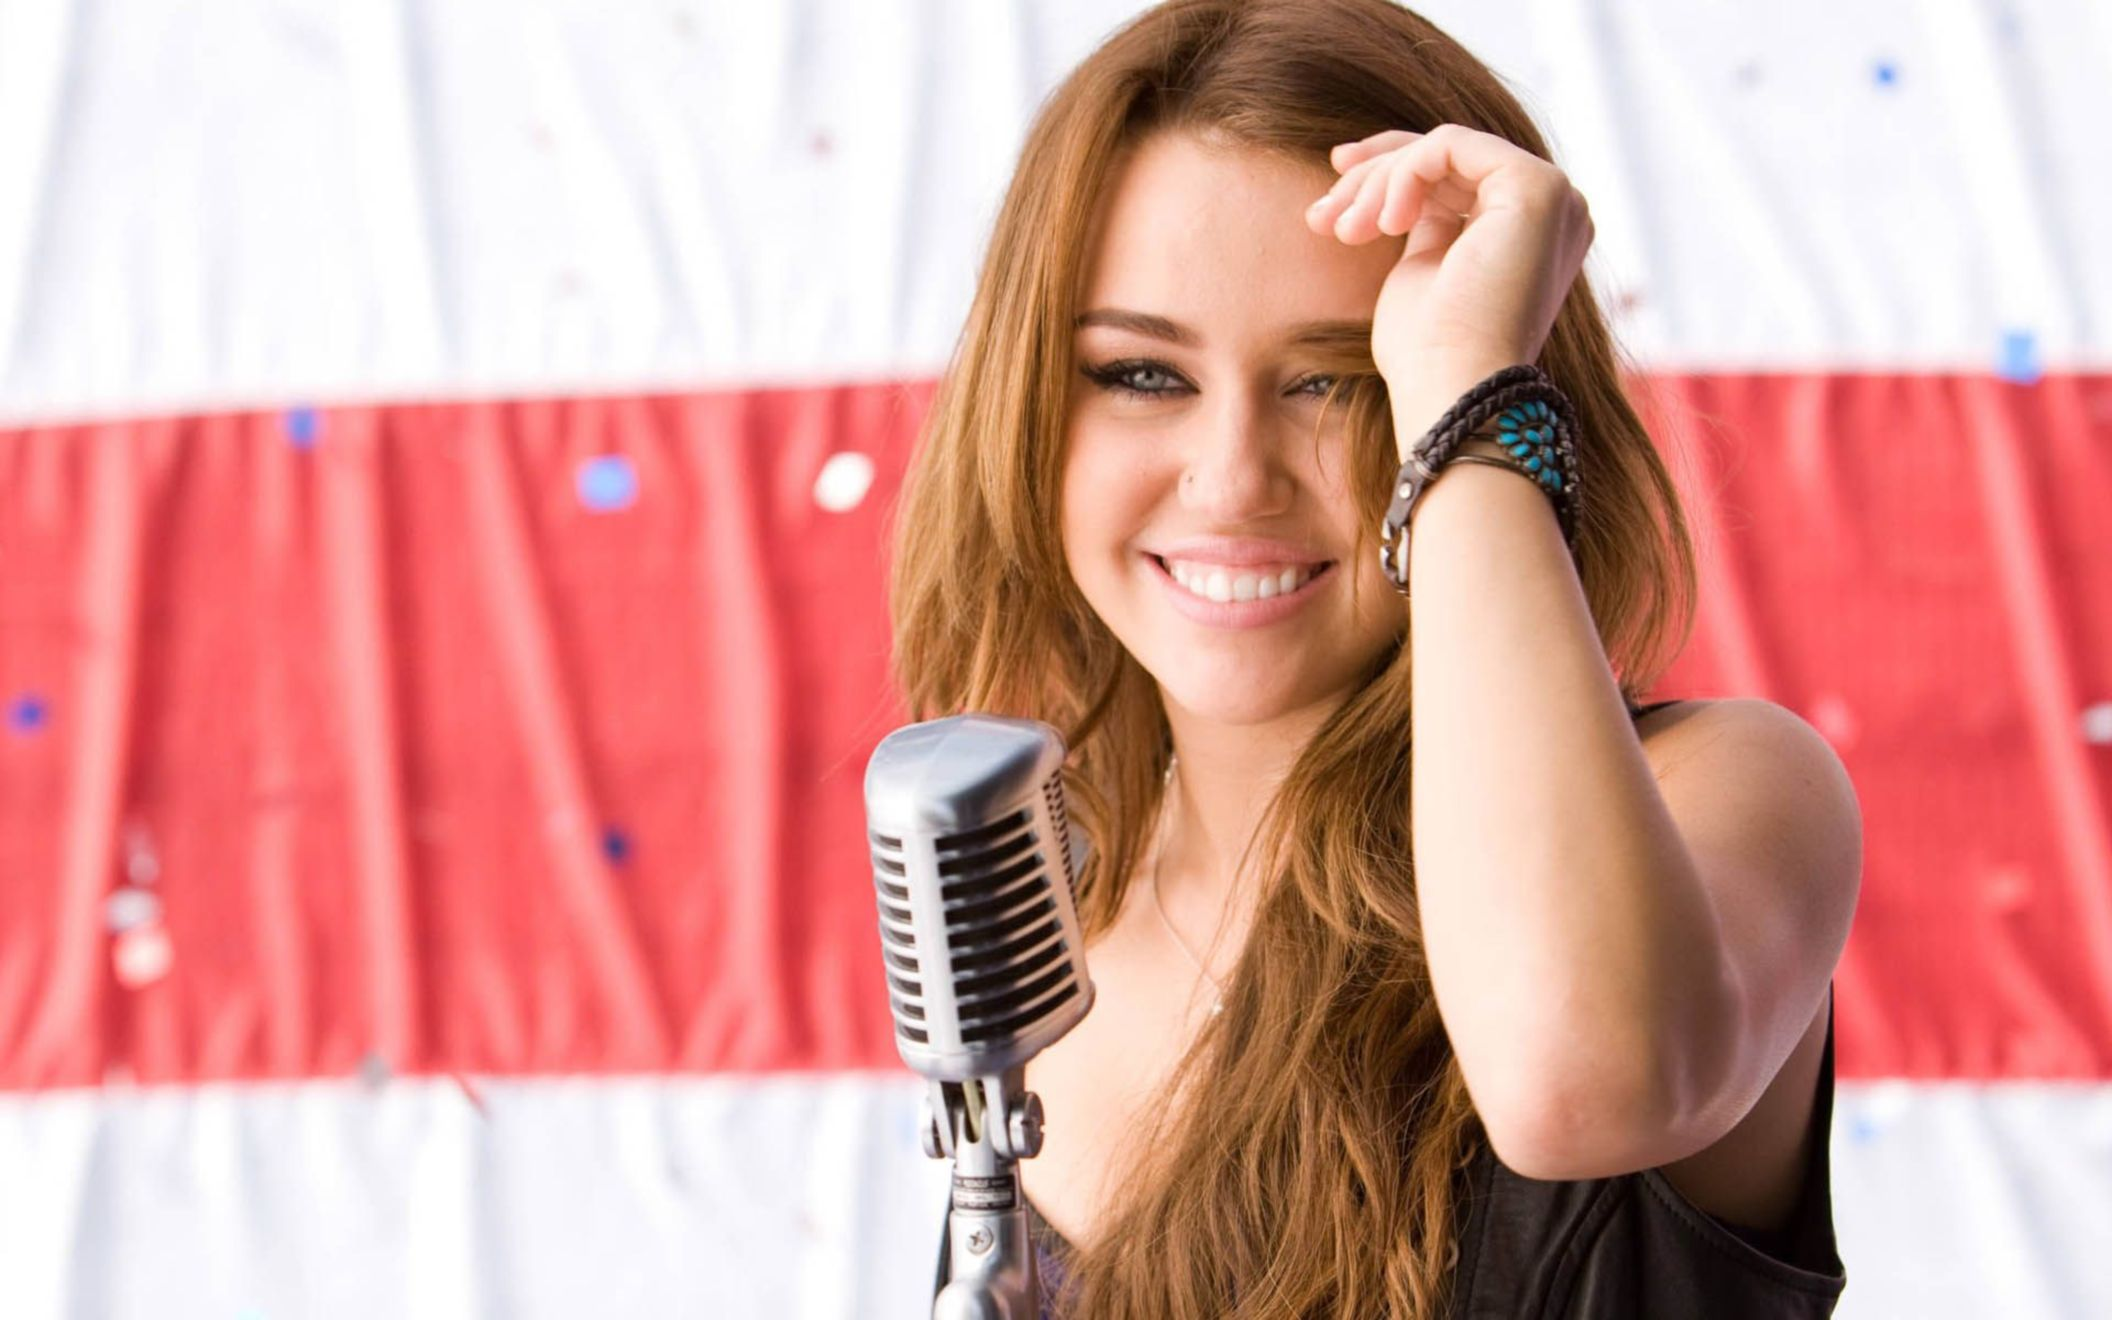 Download free HD Sweet Smile Miley Cyrus HD Wallpaper, image